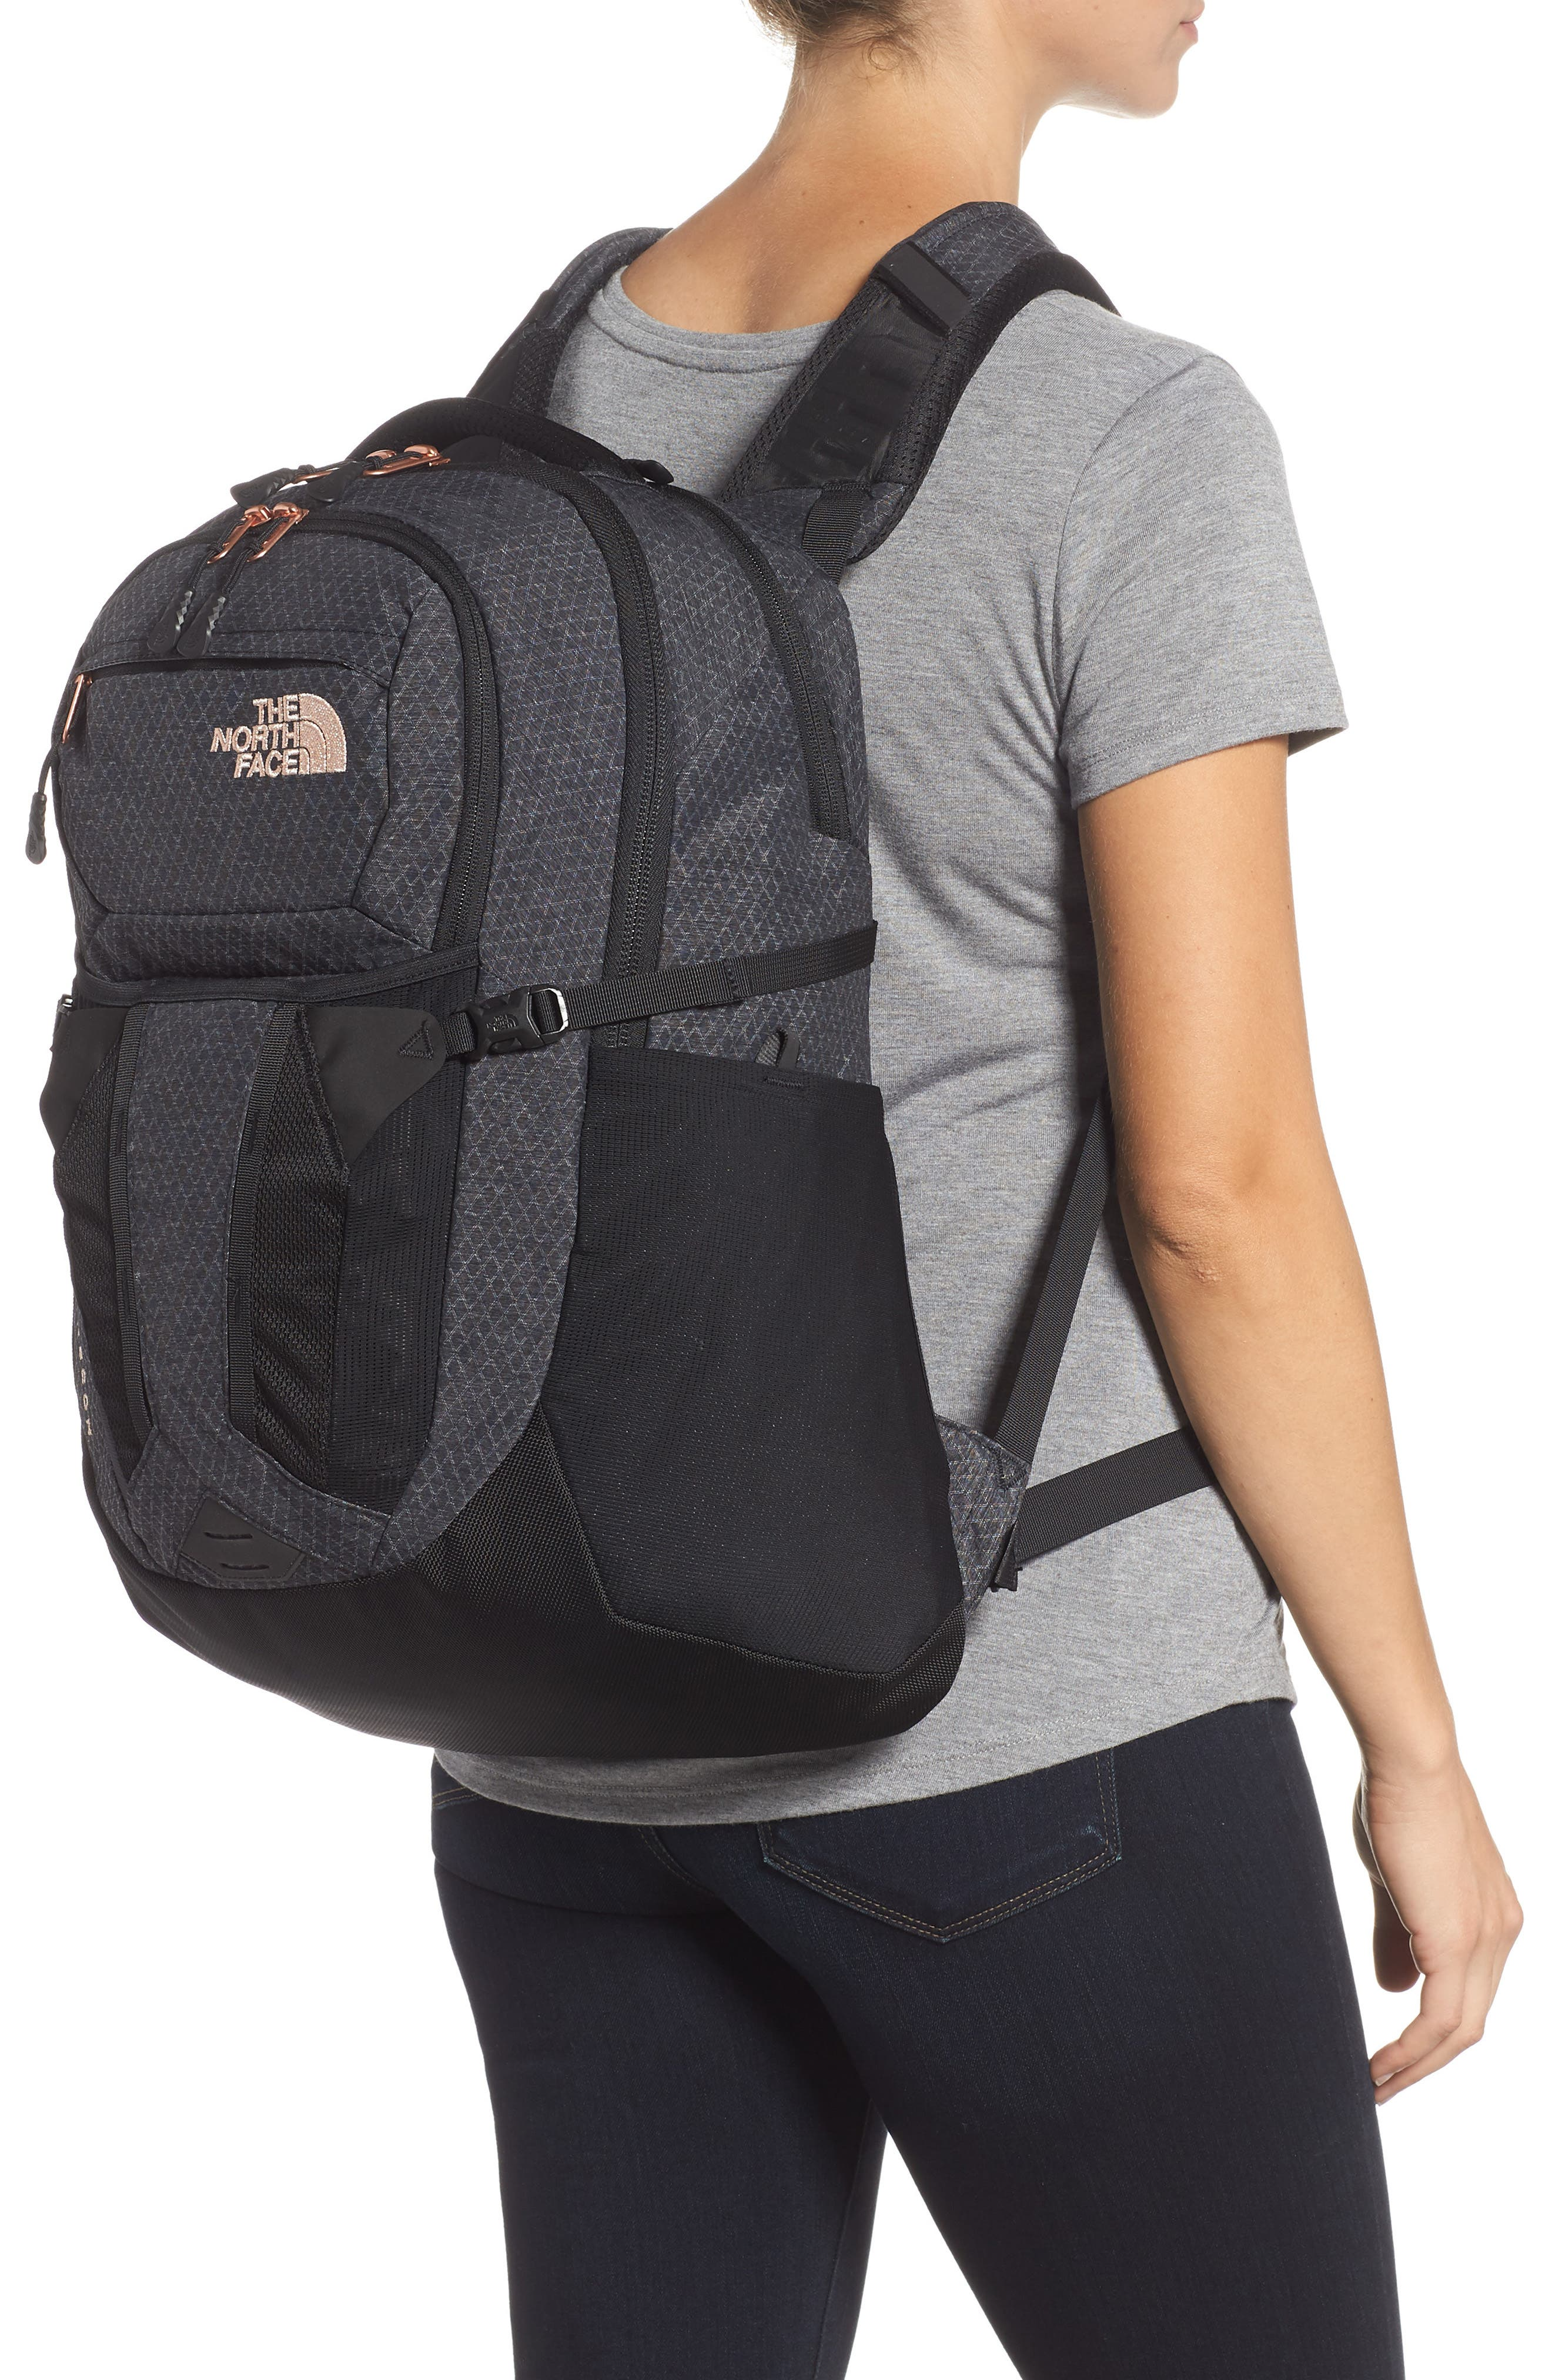 THE NORTH FACE, 'Recon' Backpack, Alternate thumbnail 2, color, 005